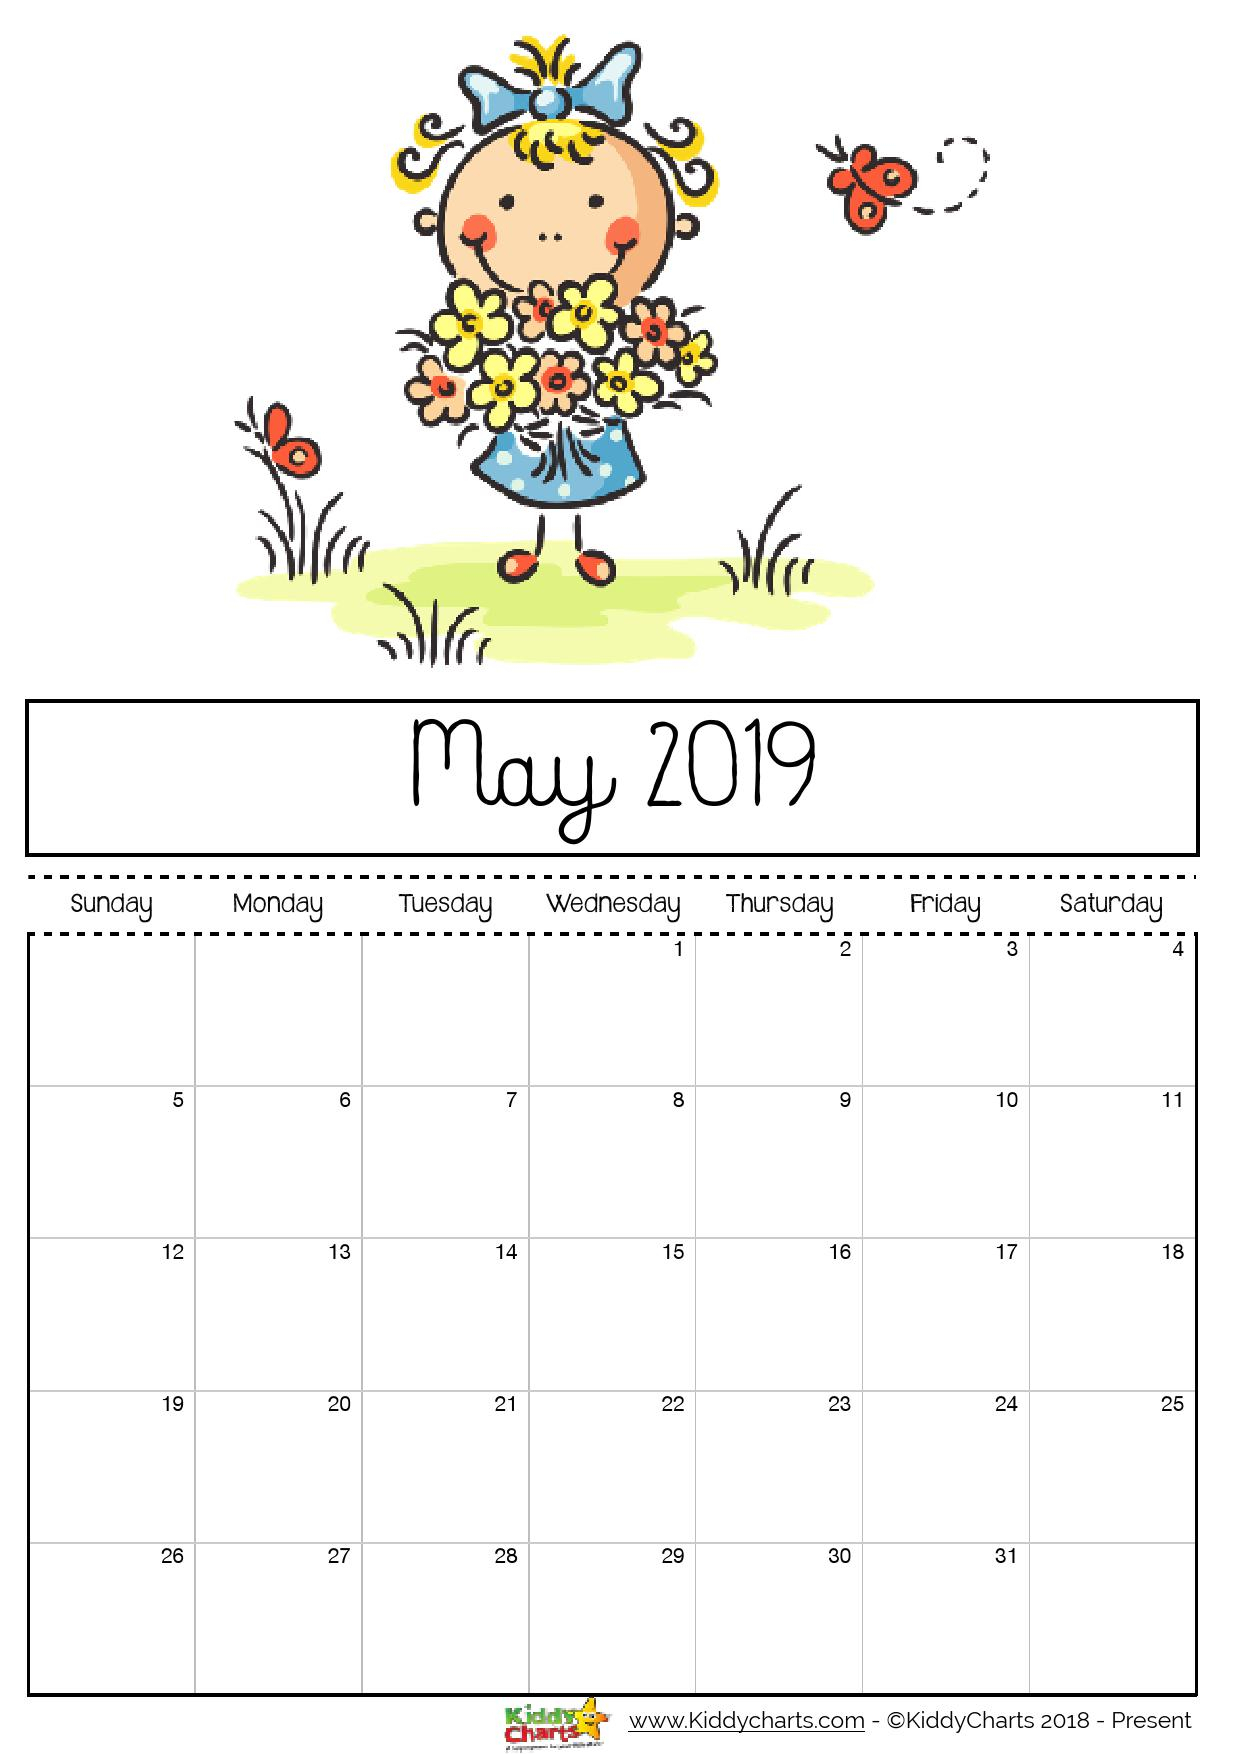 Free Printable 2019 Calendar - Print Yours Here | Kiddycharts pertaining to Empty Calendar Template For Kids